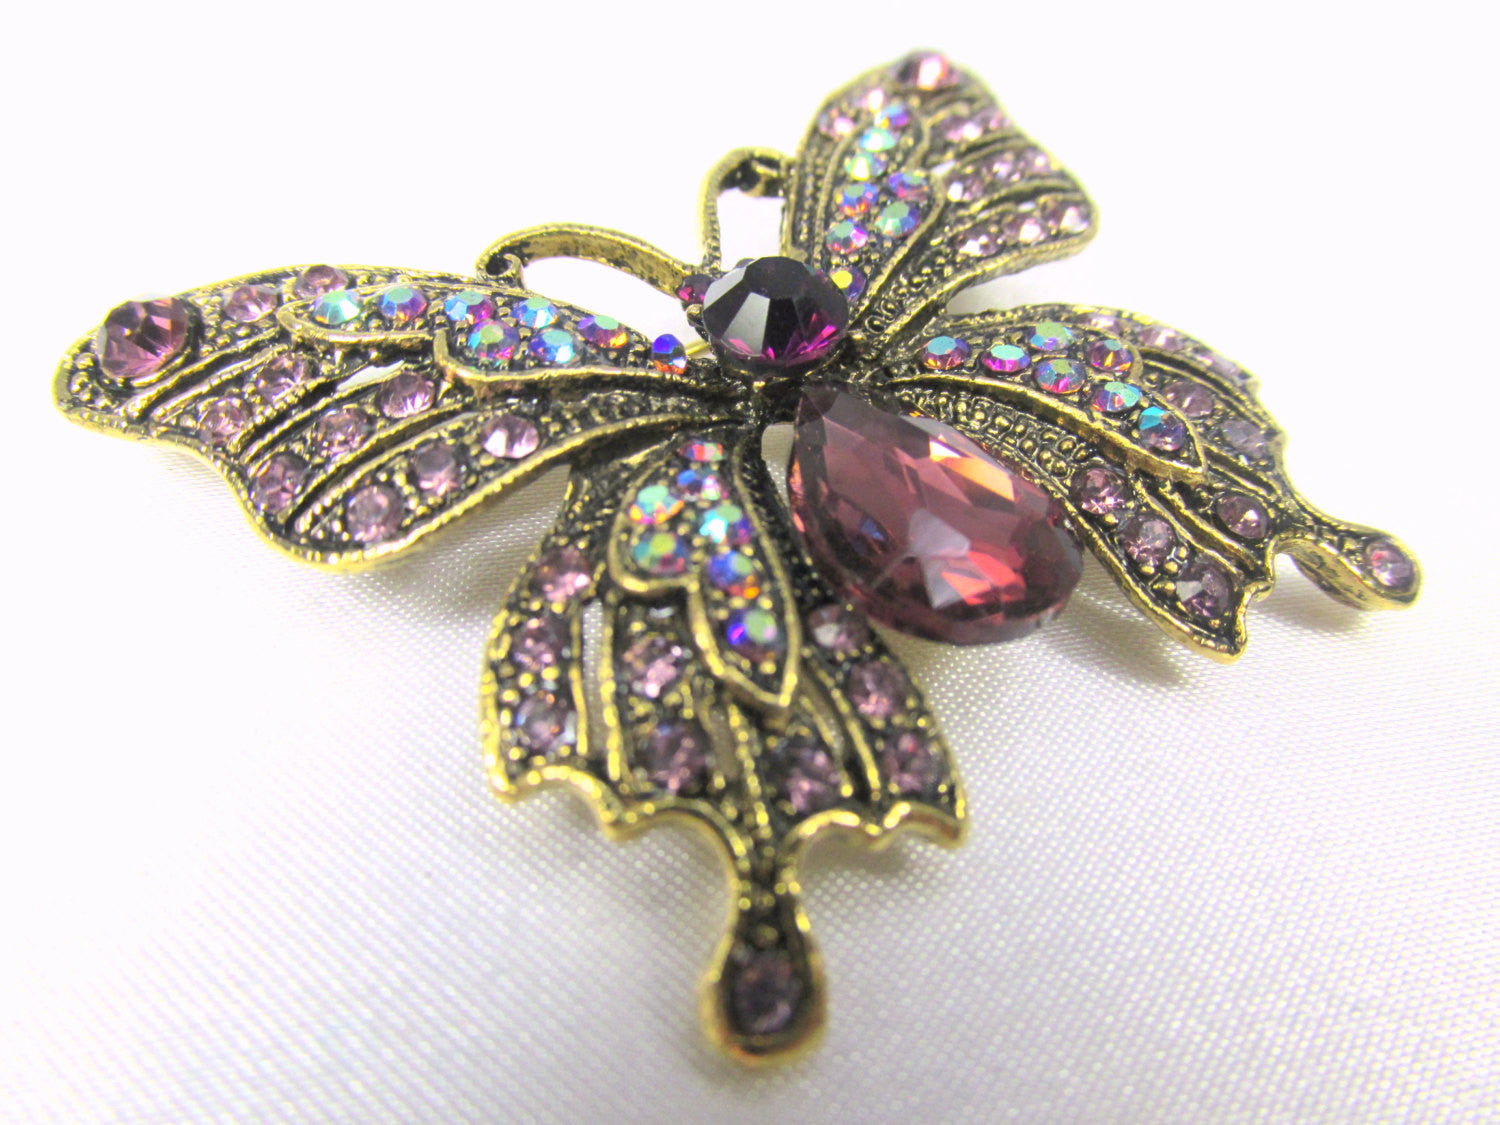 Butterfly Brooch in Purple Amethyst, Crystal AB and Antique Gold - Odyssey Cache - 2